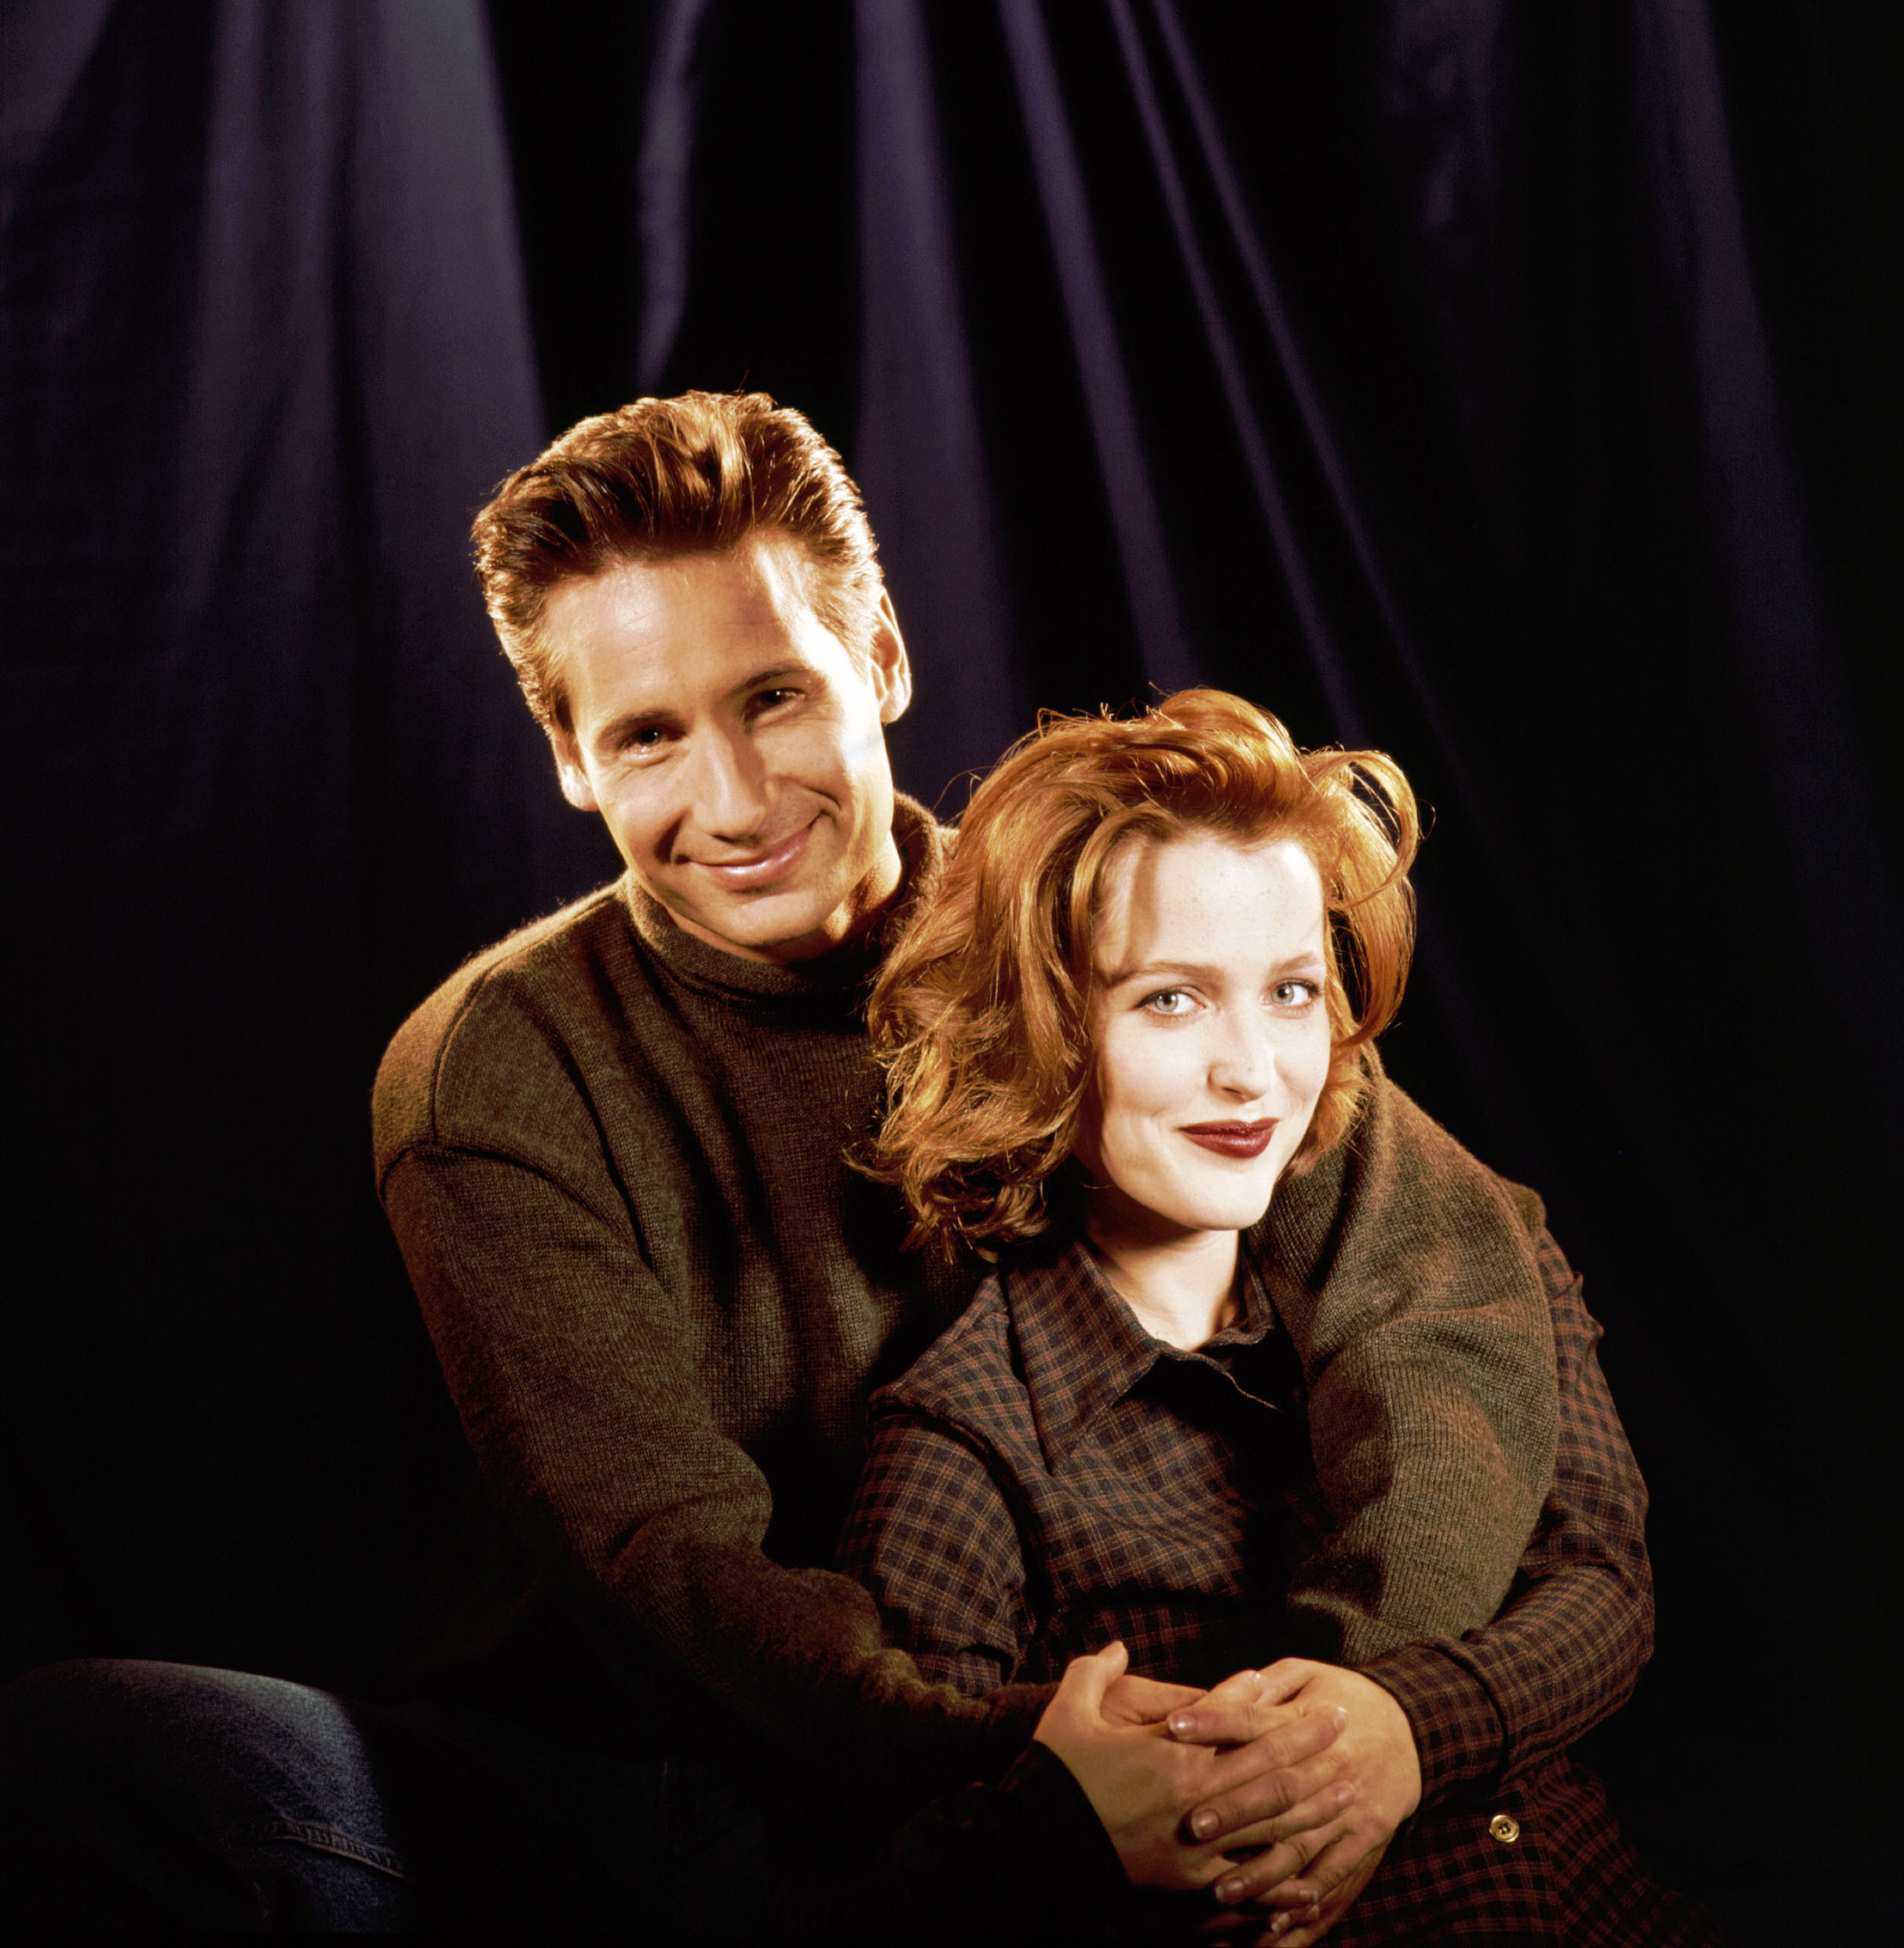 They took a goddamn awkward-family-photos-style promo shot. Well done, '90s.